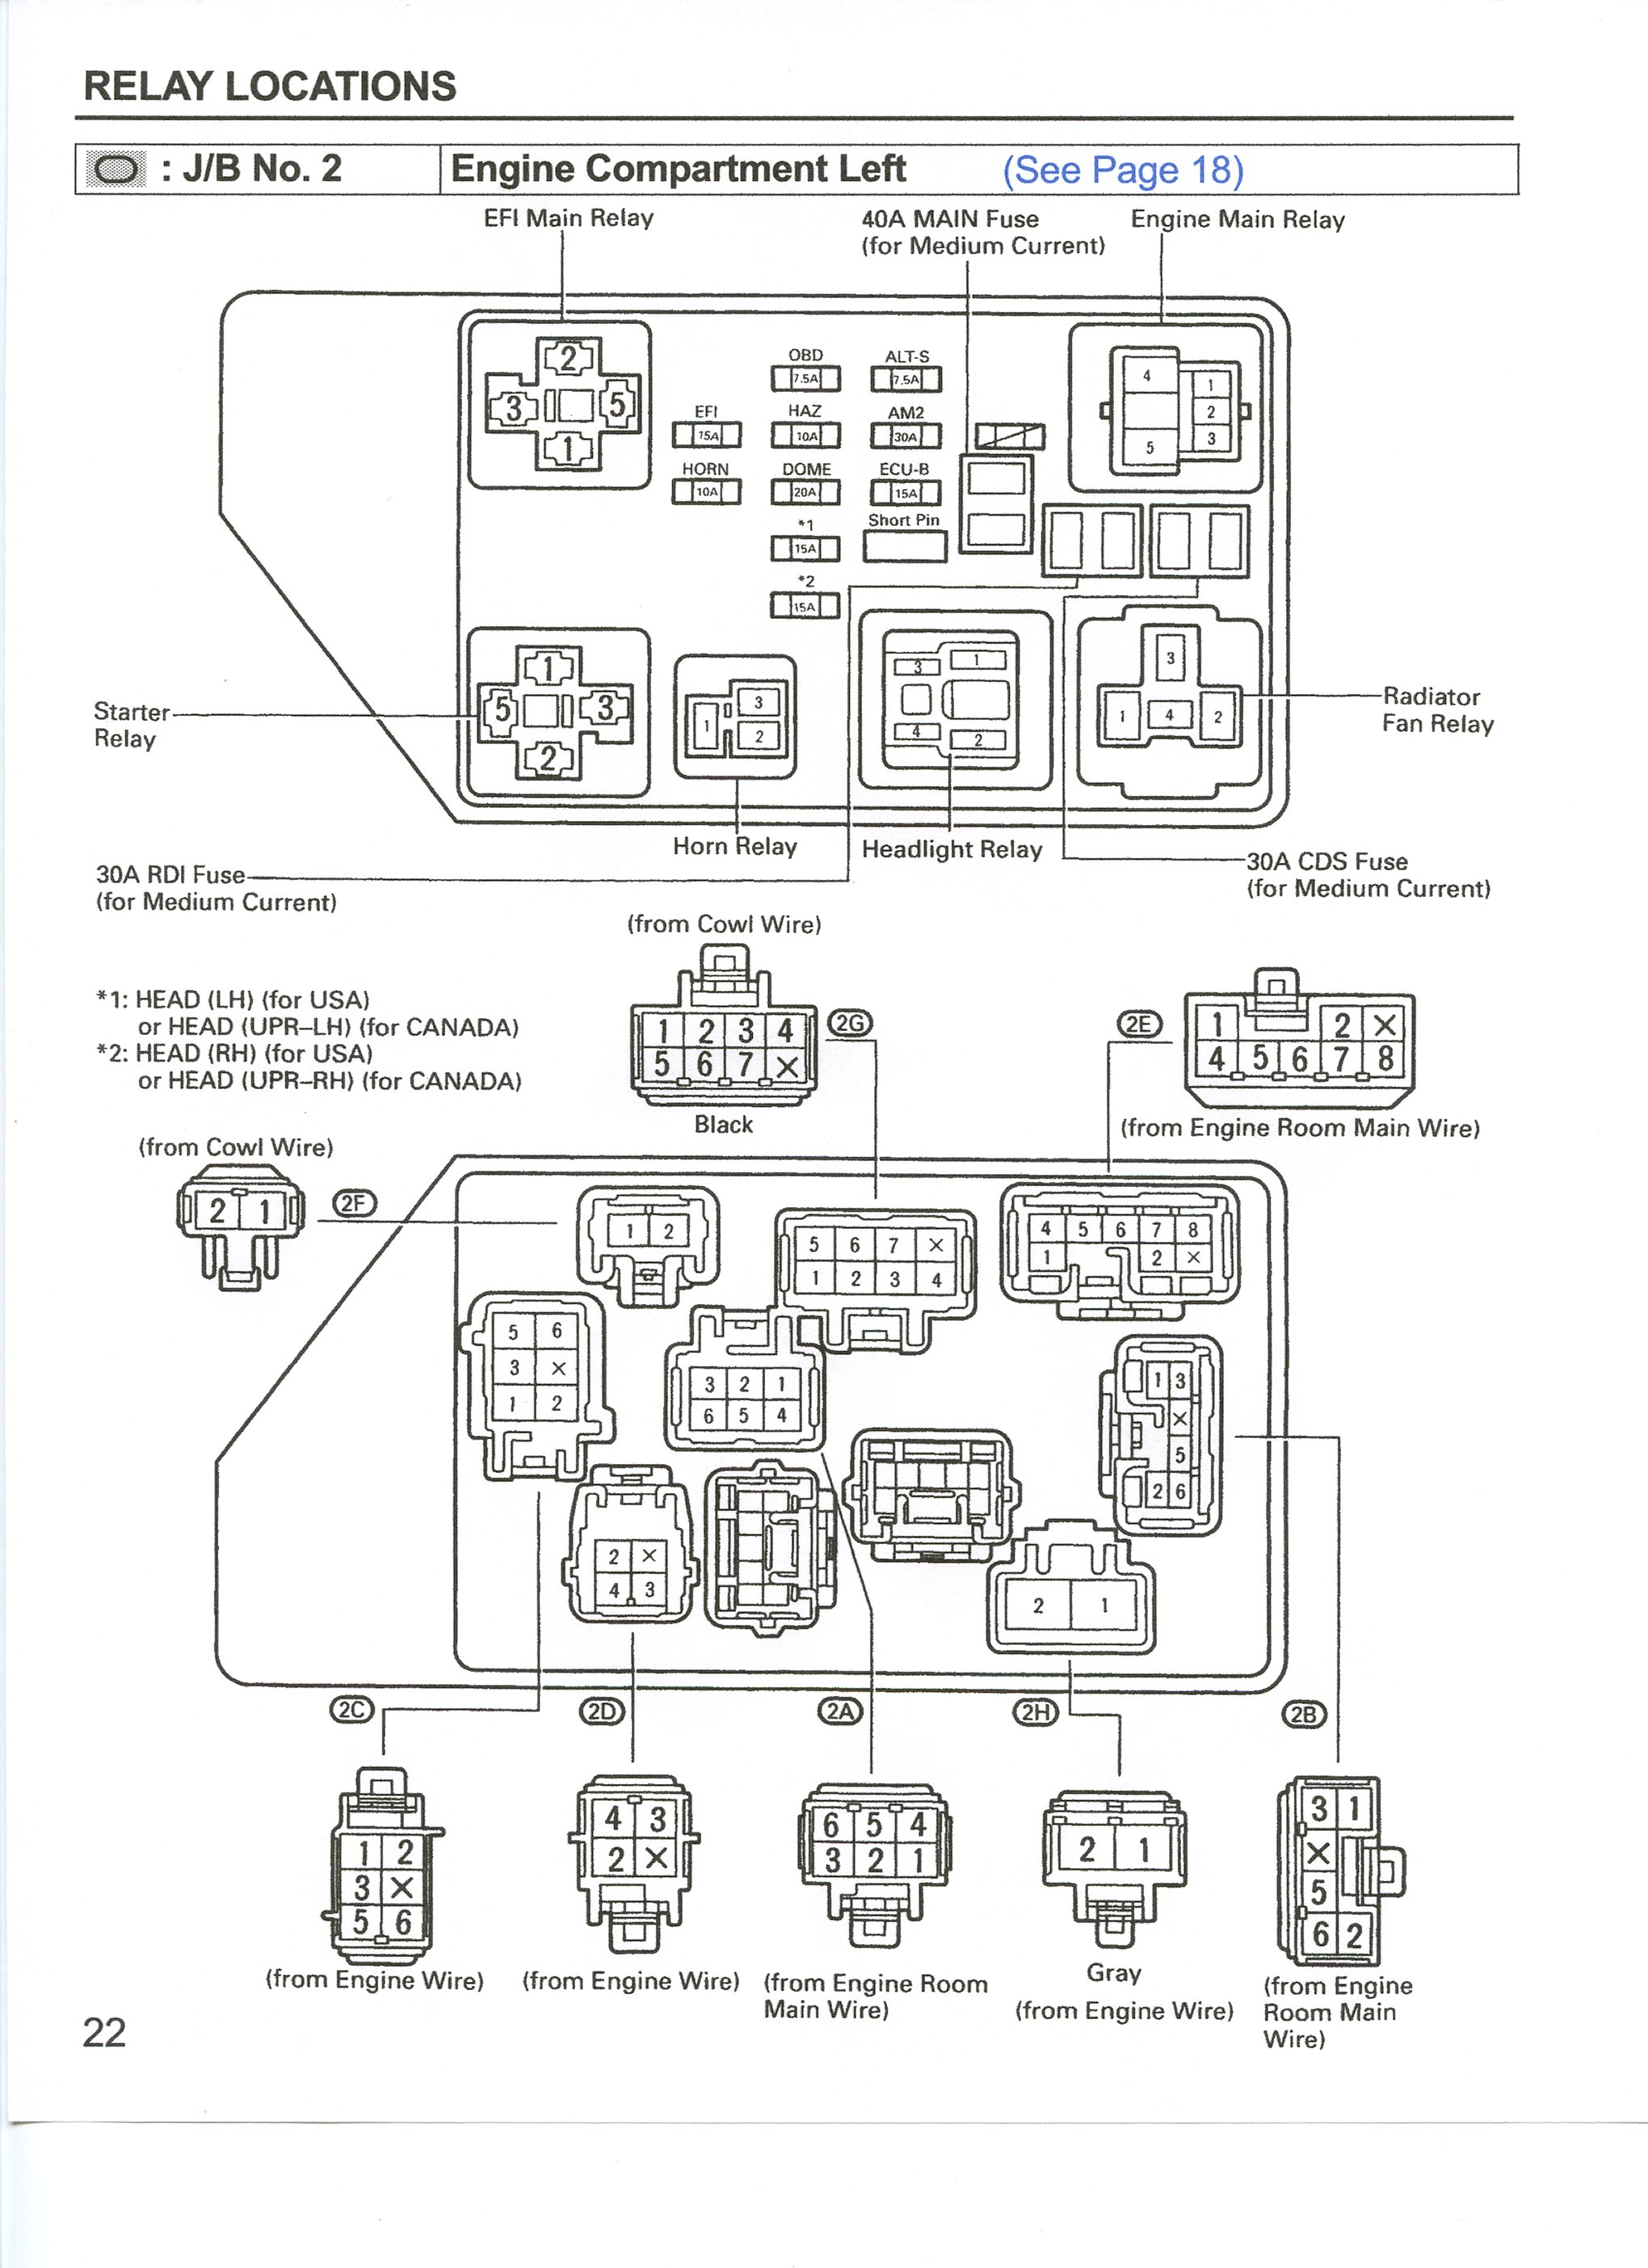 1990 toyota celica fuse box diagram OCNIlgW toyota prius fuse box toyota matrix fuse box \u2022 free wiring 2014 Toyota Highlander Wiring-Diagram at bayanpartner.co